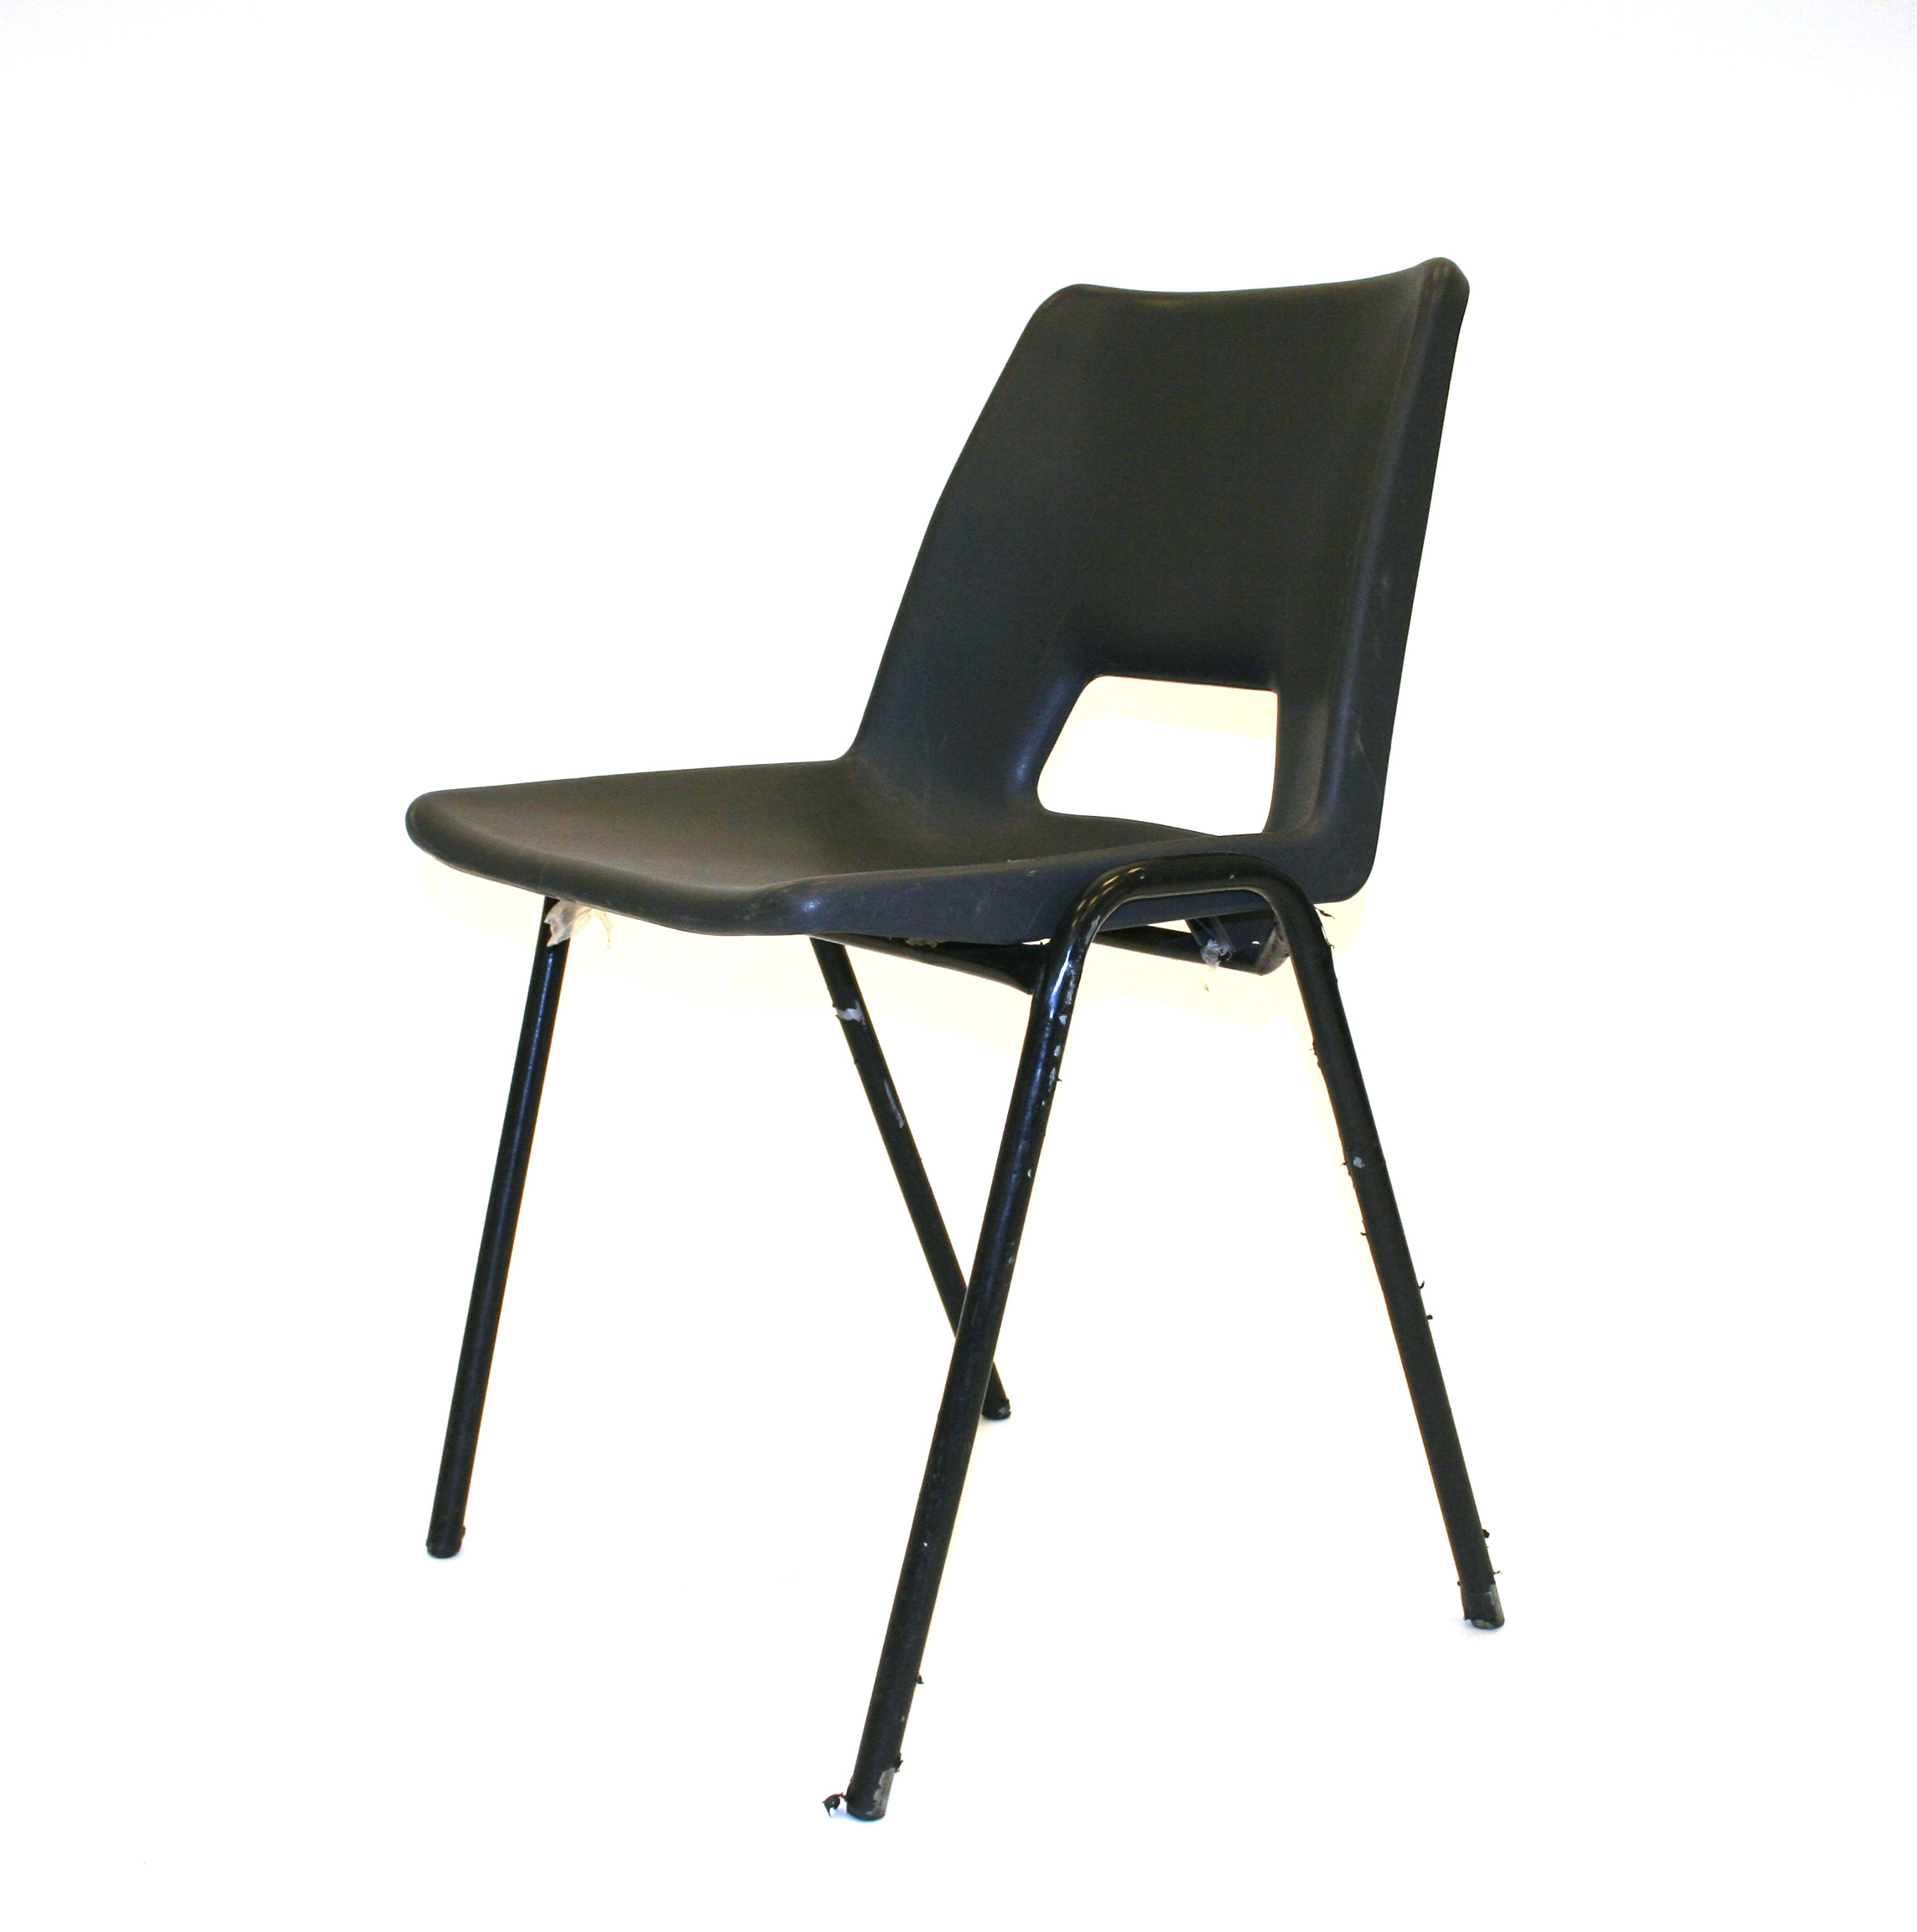 Buy Second Hand Plastic Stacking Chair